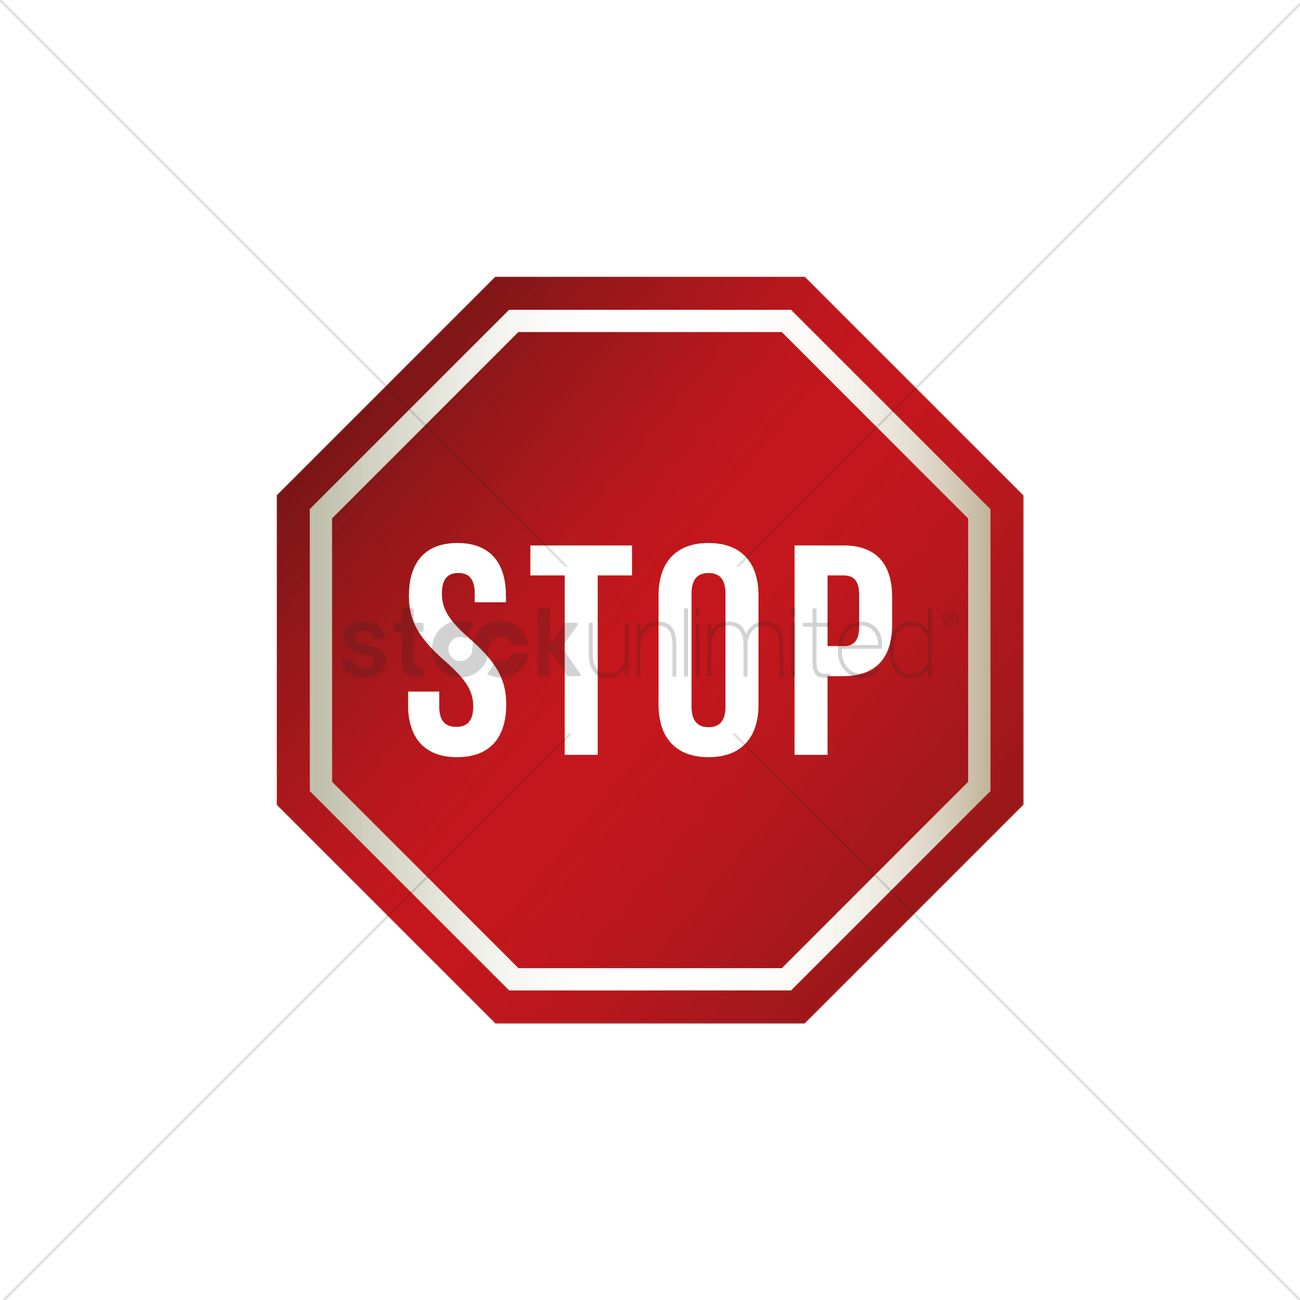 stop road sign vector image 1559032 stockunlimited rh stockunlimited com stop sign graphic black and white stop sign graphic design